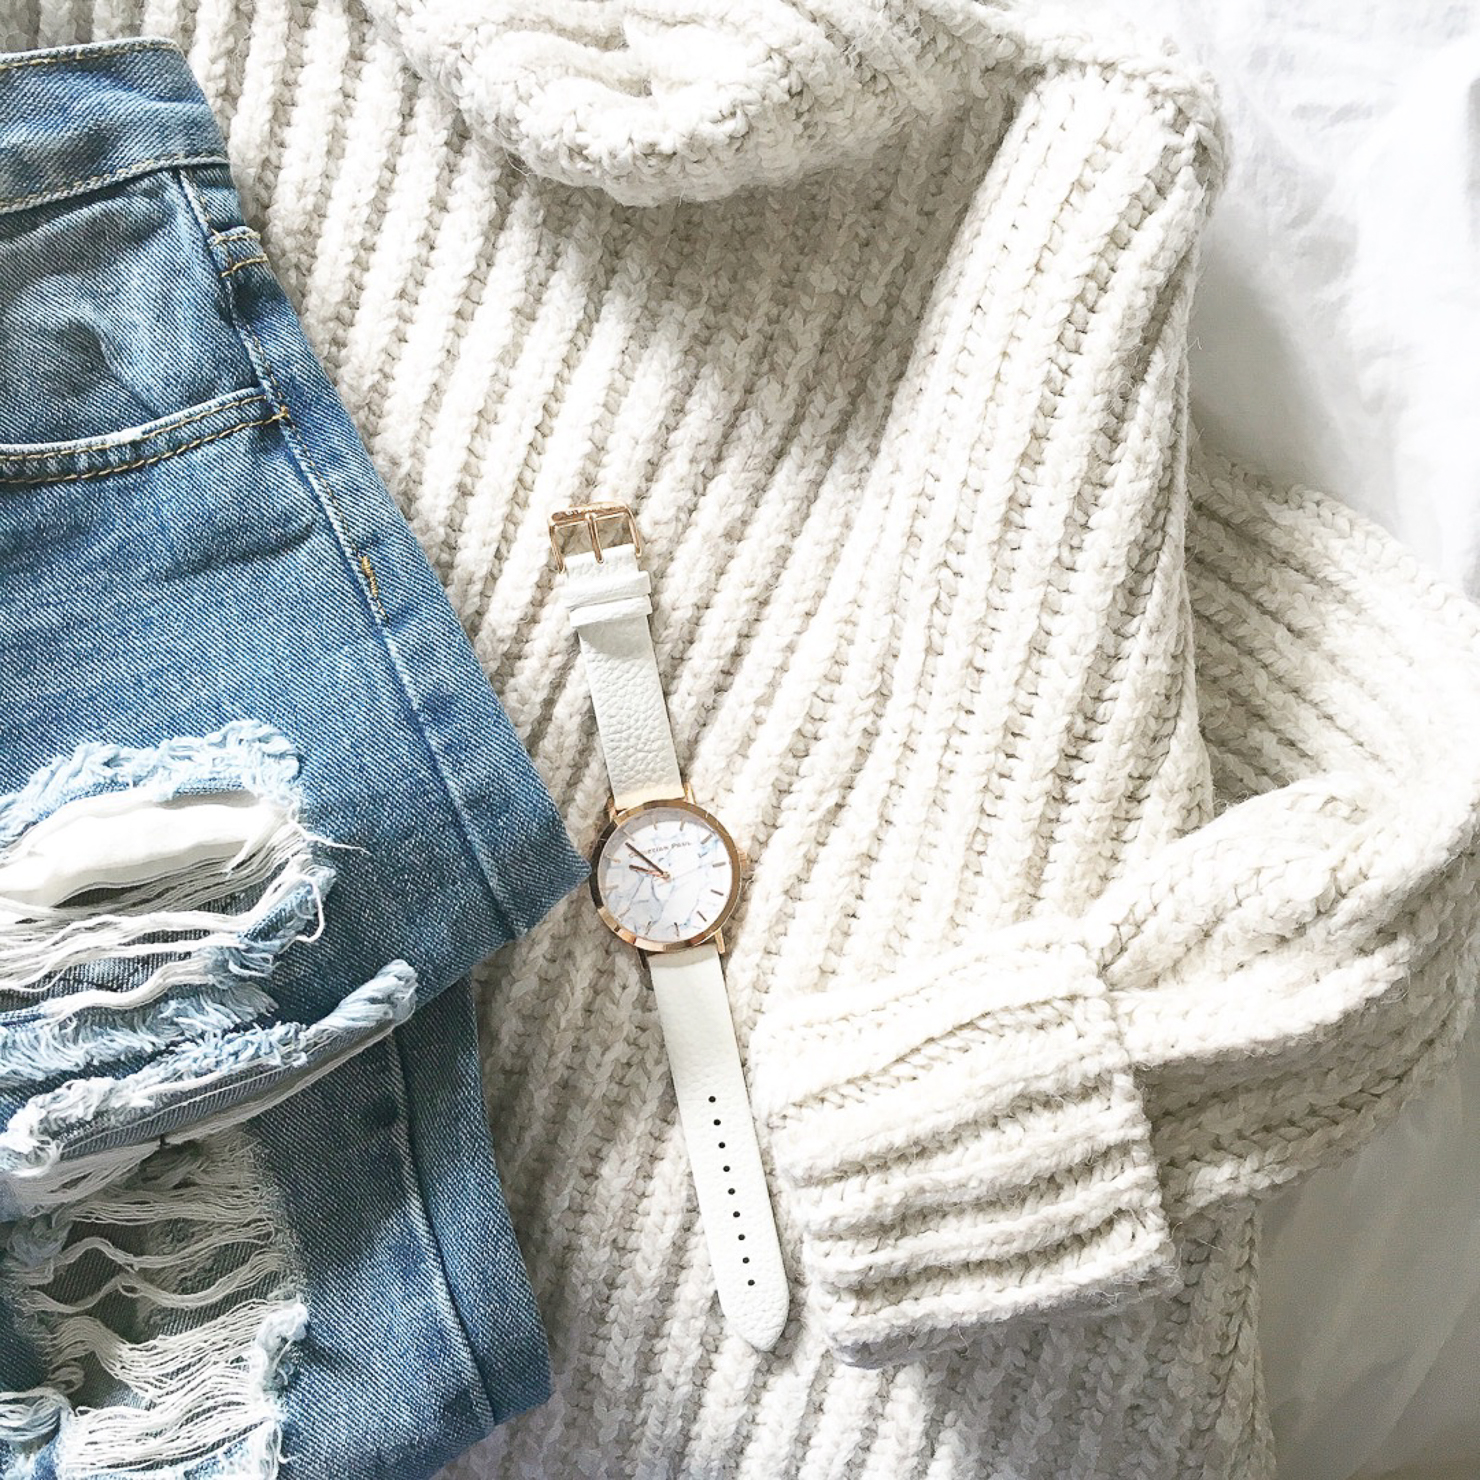 christian-paul-marble-watch-chunky-sweater-distressed-jeans-